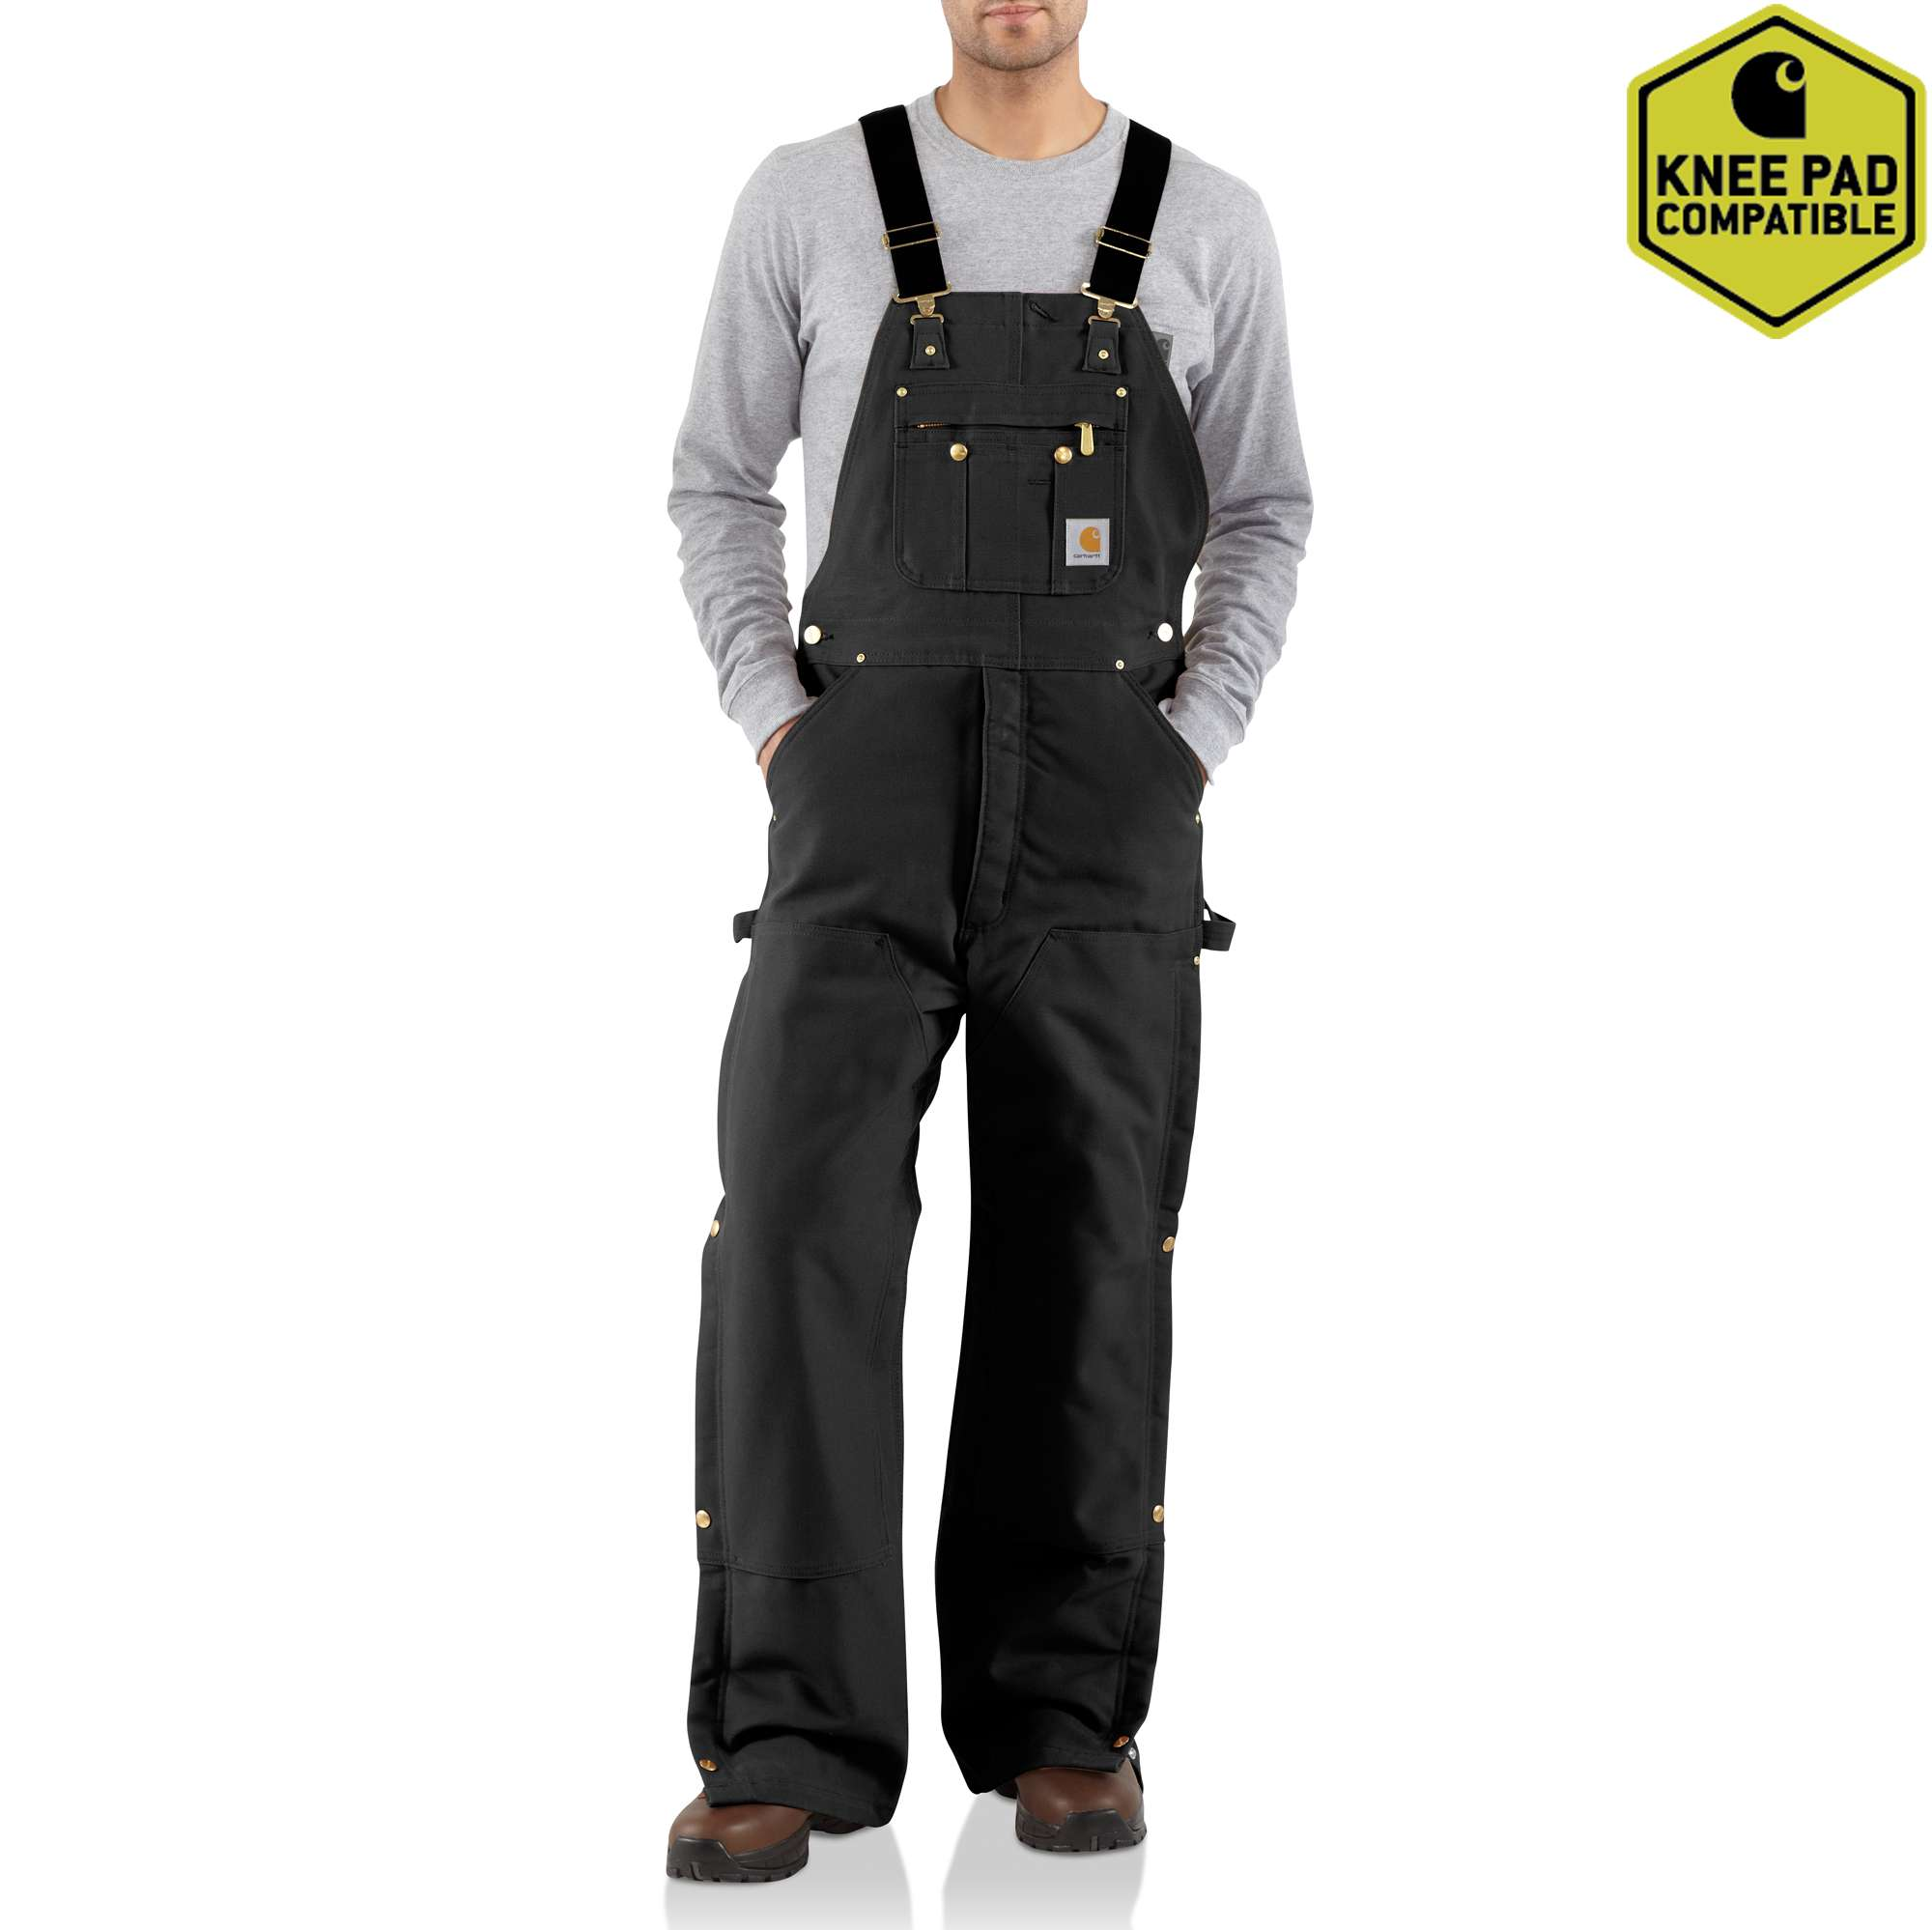 Carhartt Duck Zip-to-Thigh Bib Overall/Quilt Lined